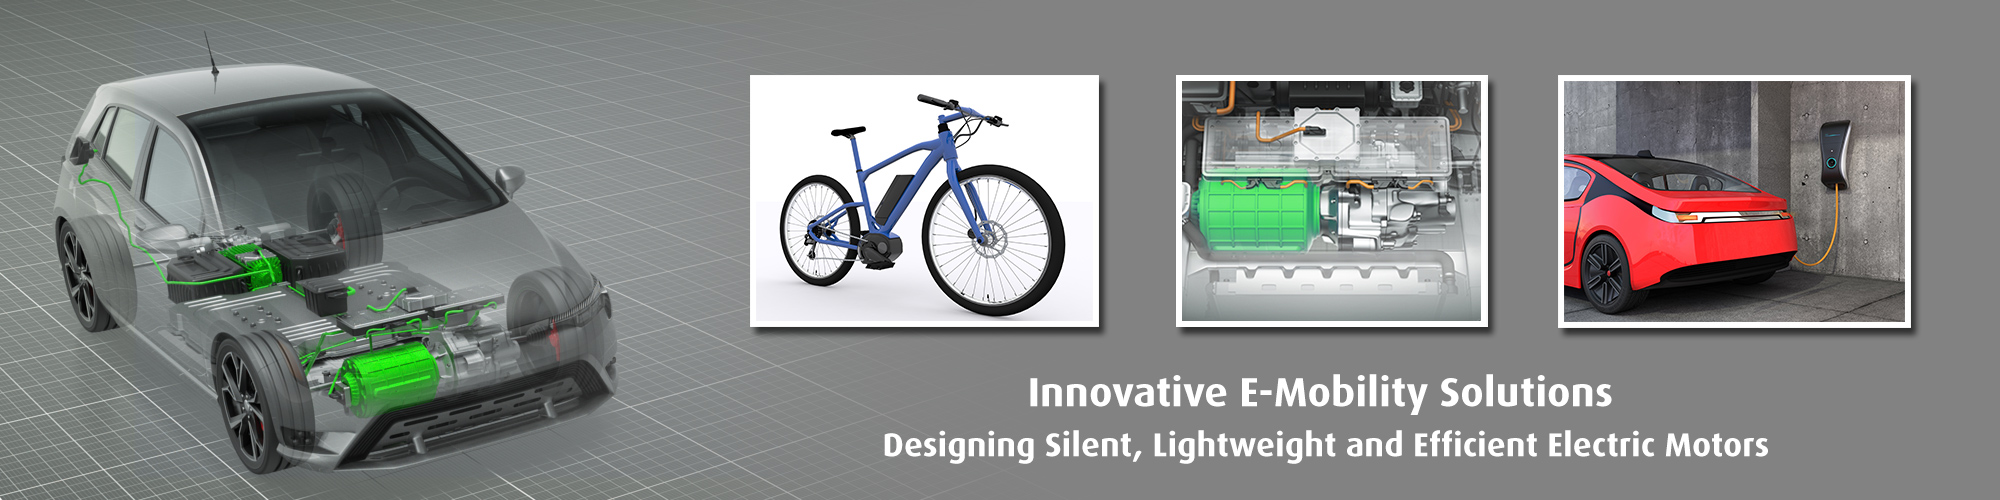 Innovative E-Mobility Solutions - Designing silent, lightweight and efficient electric motors